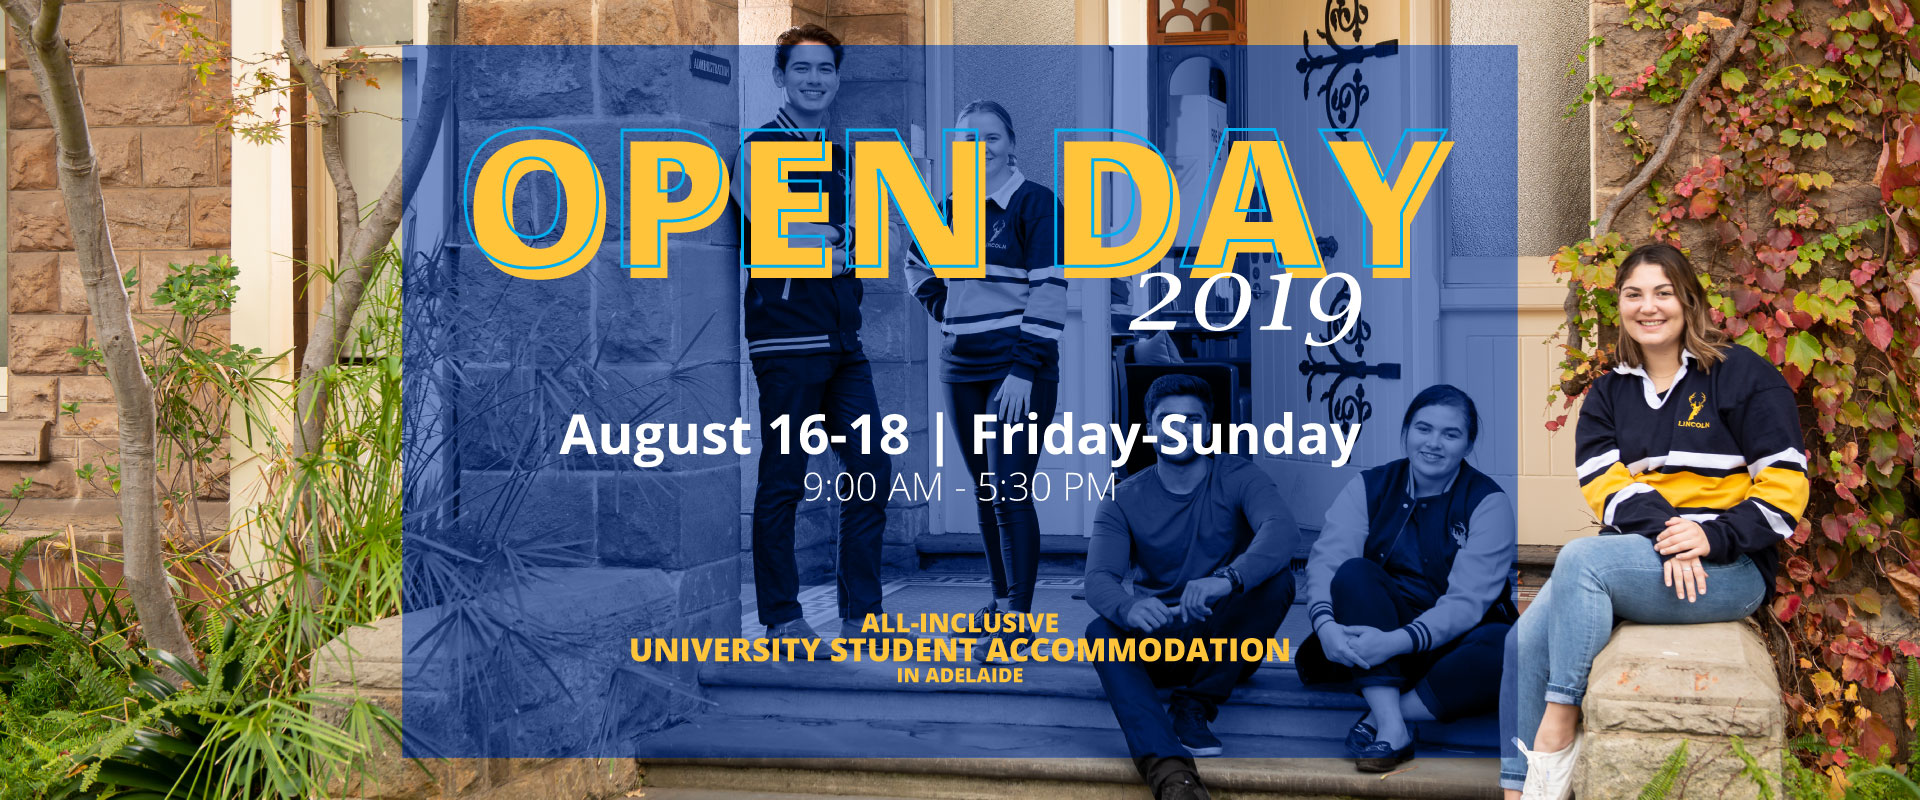 Open Day is your opportunity to visit our campuses and talk to the staff and students about living at the Lincoln College.